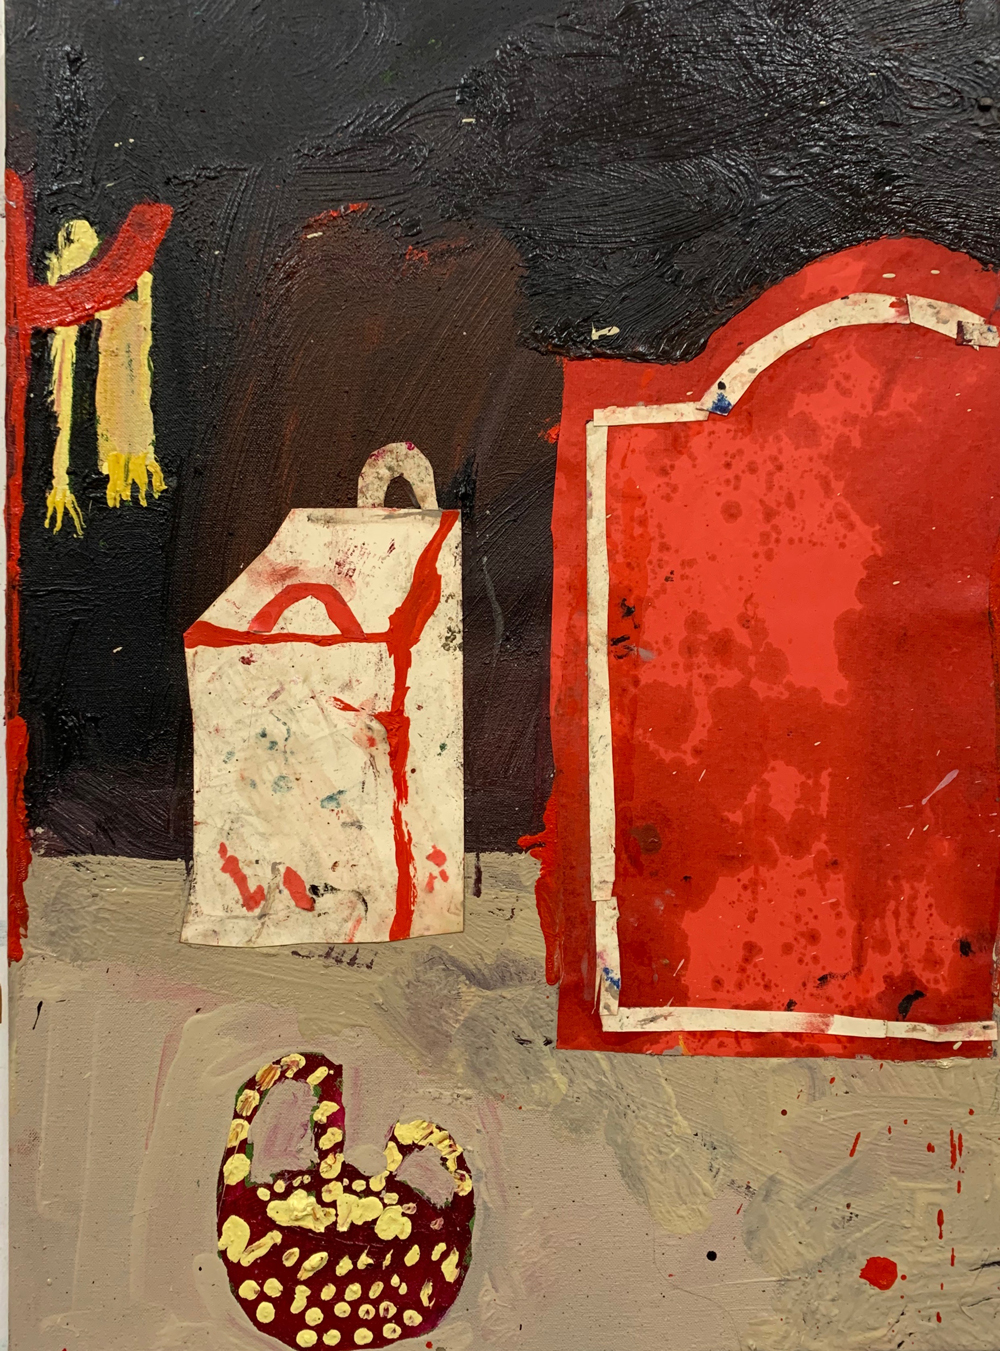 Florence-Hutchings-The-Black-Wallpaper,-2020,-oil-paint-and-collage-on-canvas-41x56cm